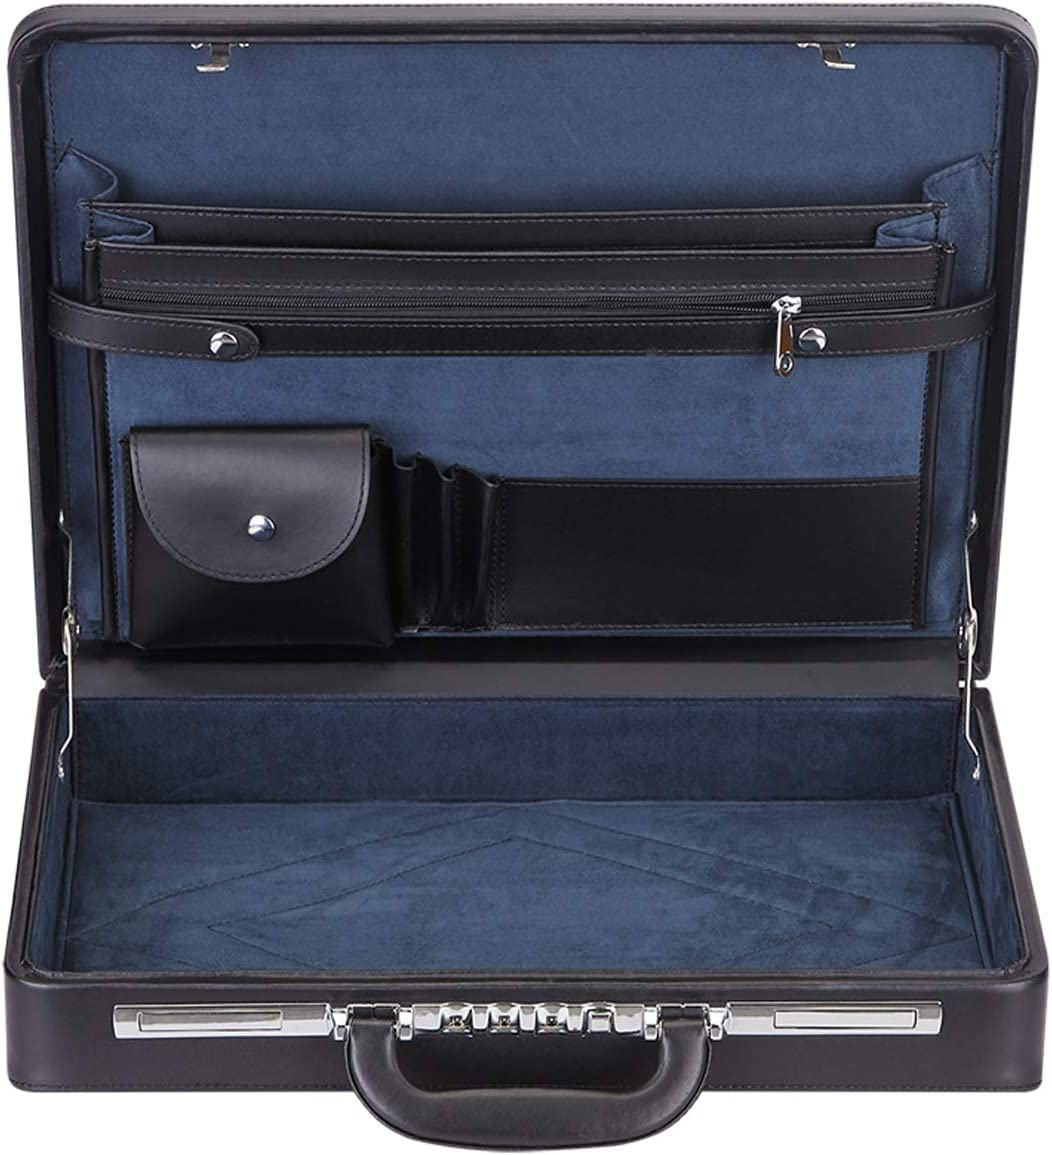 Hard Attache Expandable Briefcases for Men & Women/Hard-sided Laptop Case with Combination Locks - Black